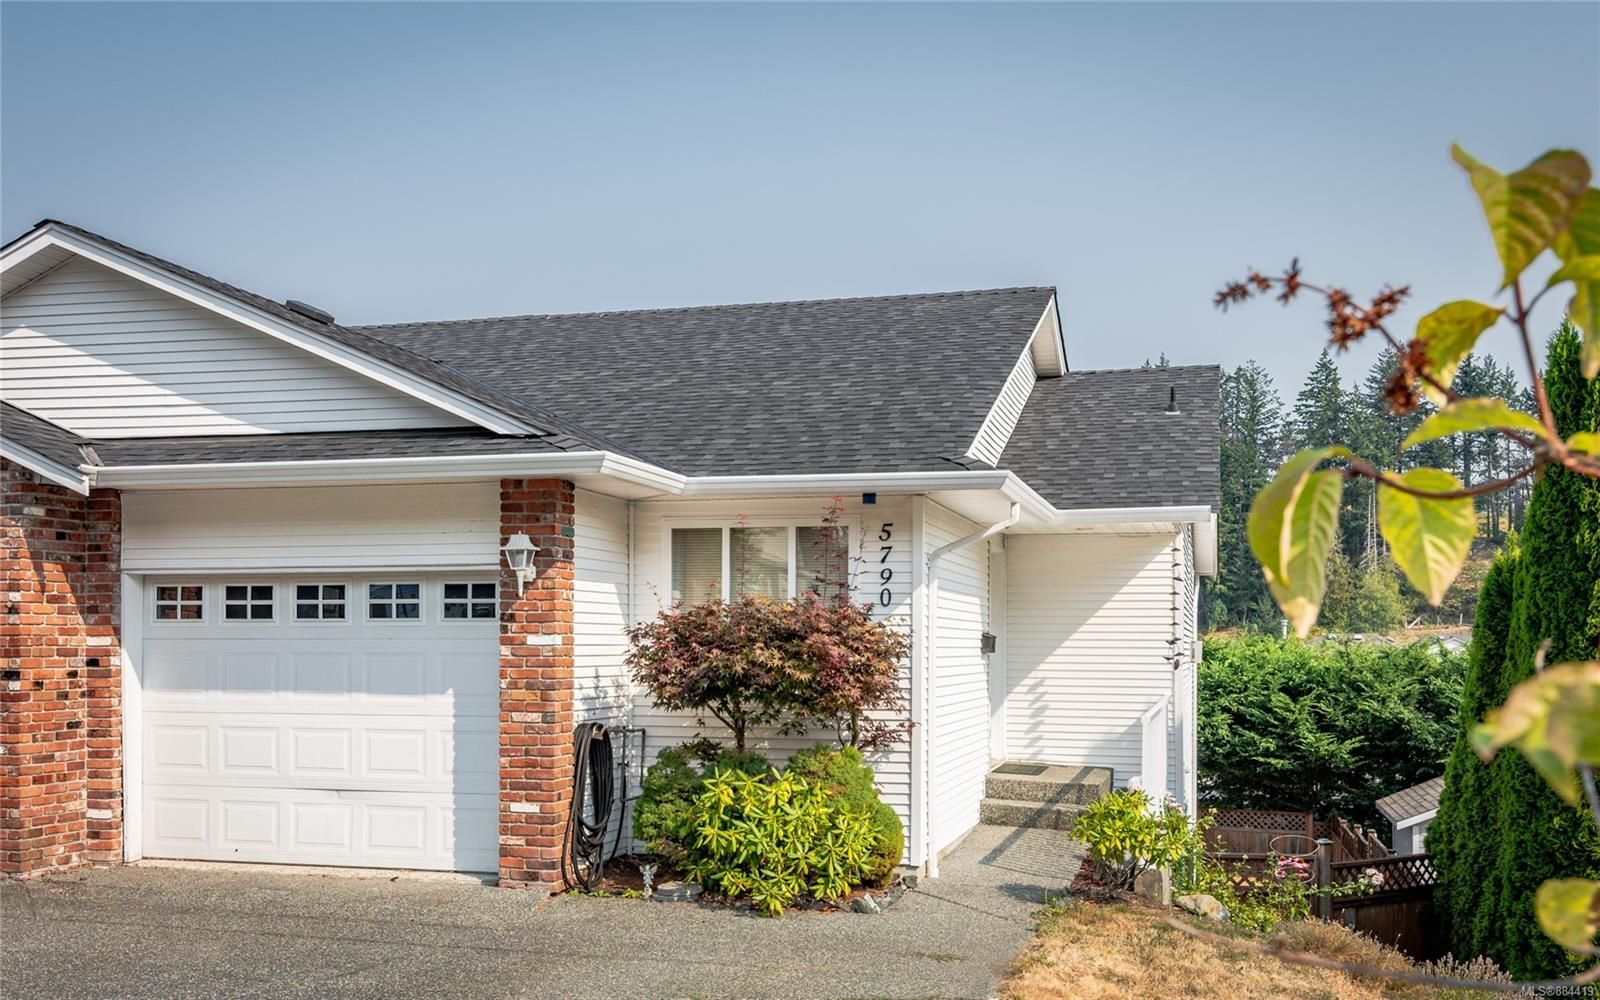 Main Photo: 5790 Brookwood Dr in : Na Uplands Half Duplex for sale (Nanaimo)  : MLS®# 884419